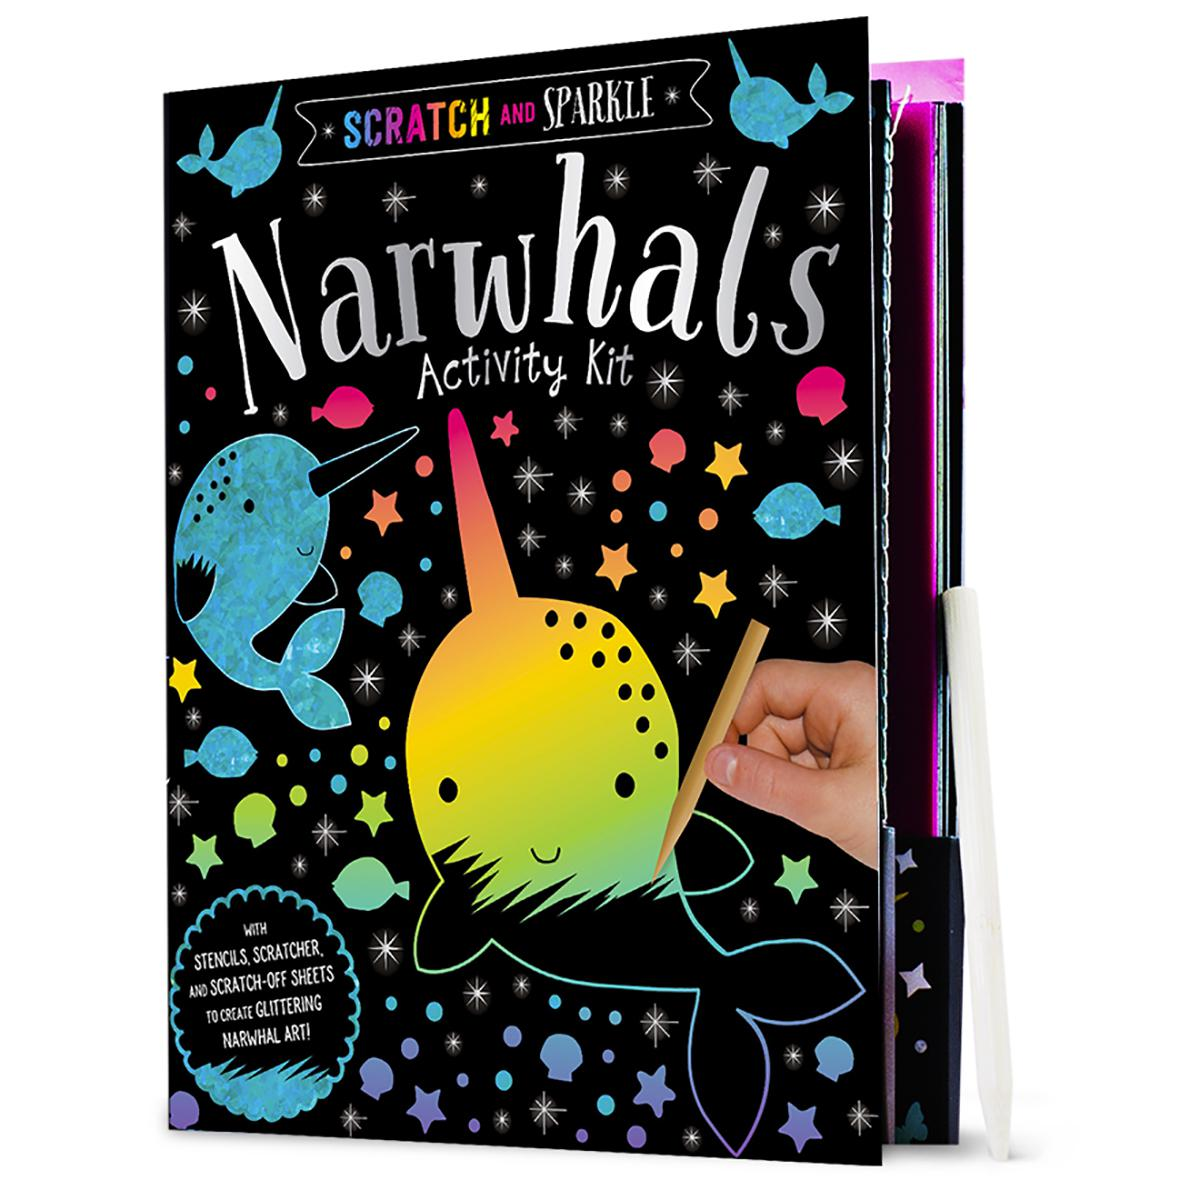 Scratch and Sparkle: Narwhals Activity Kit